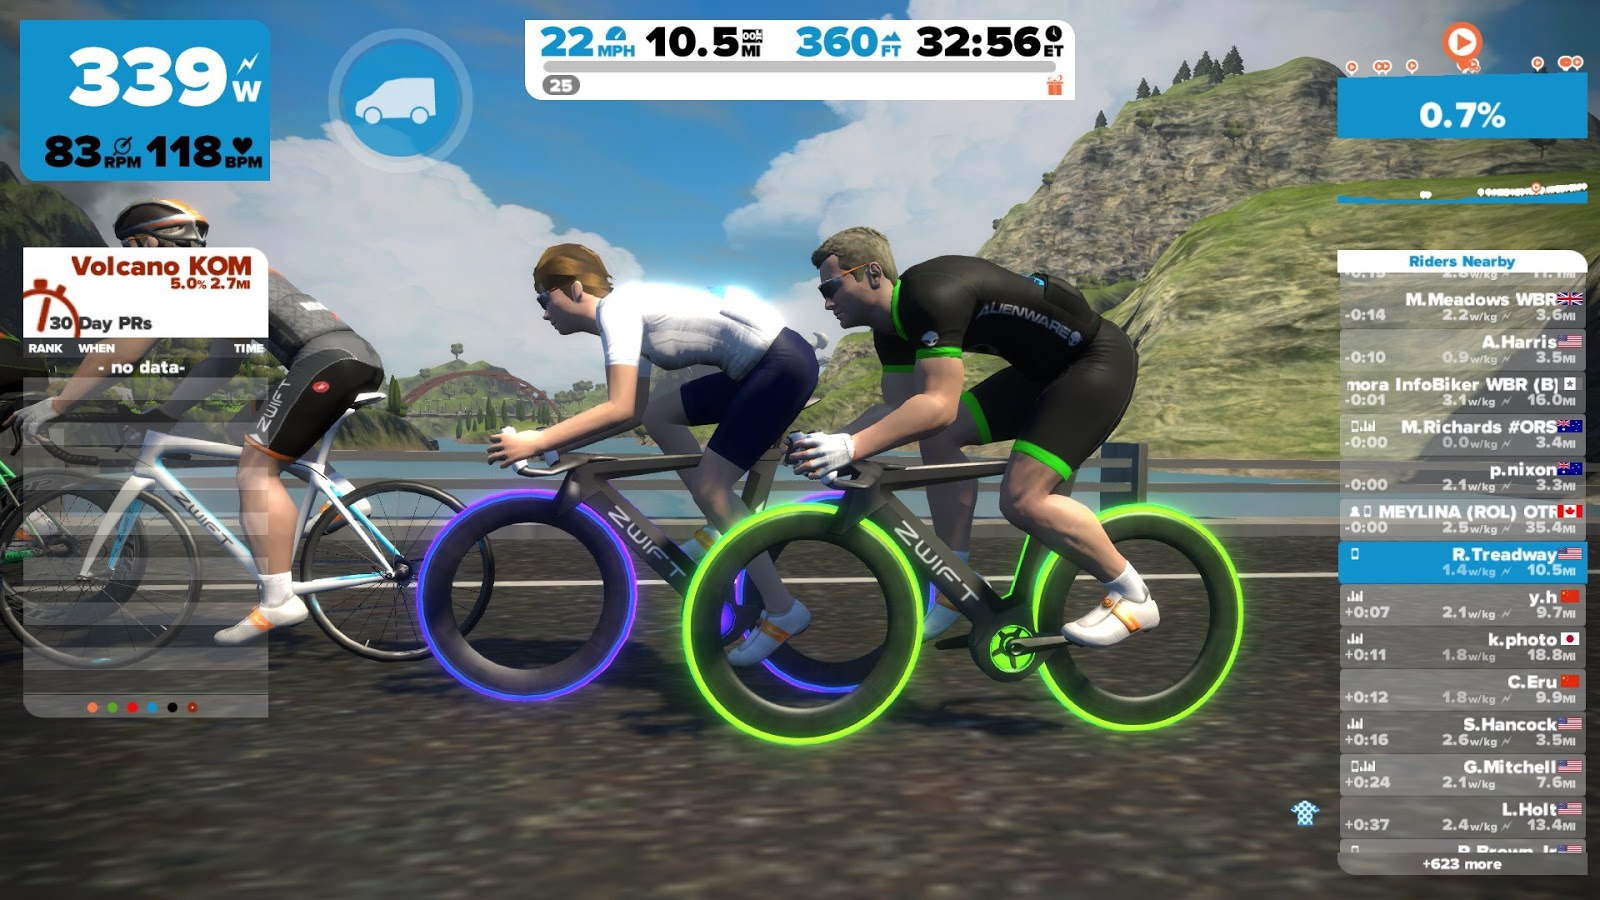 Richard's Weblog: How to Get Started with Zwift